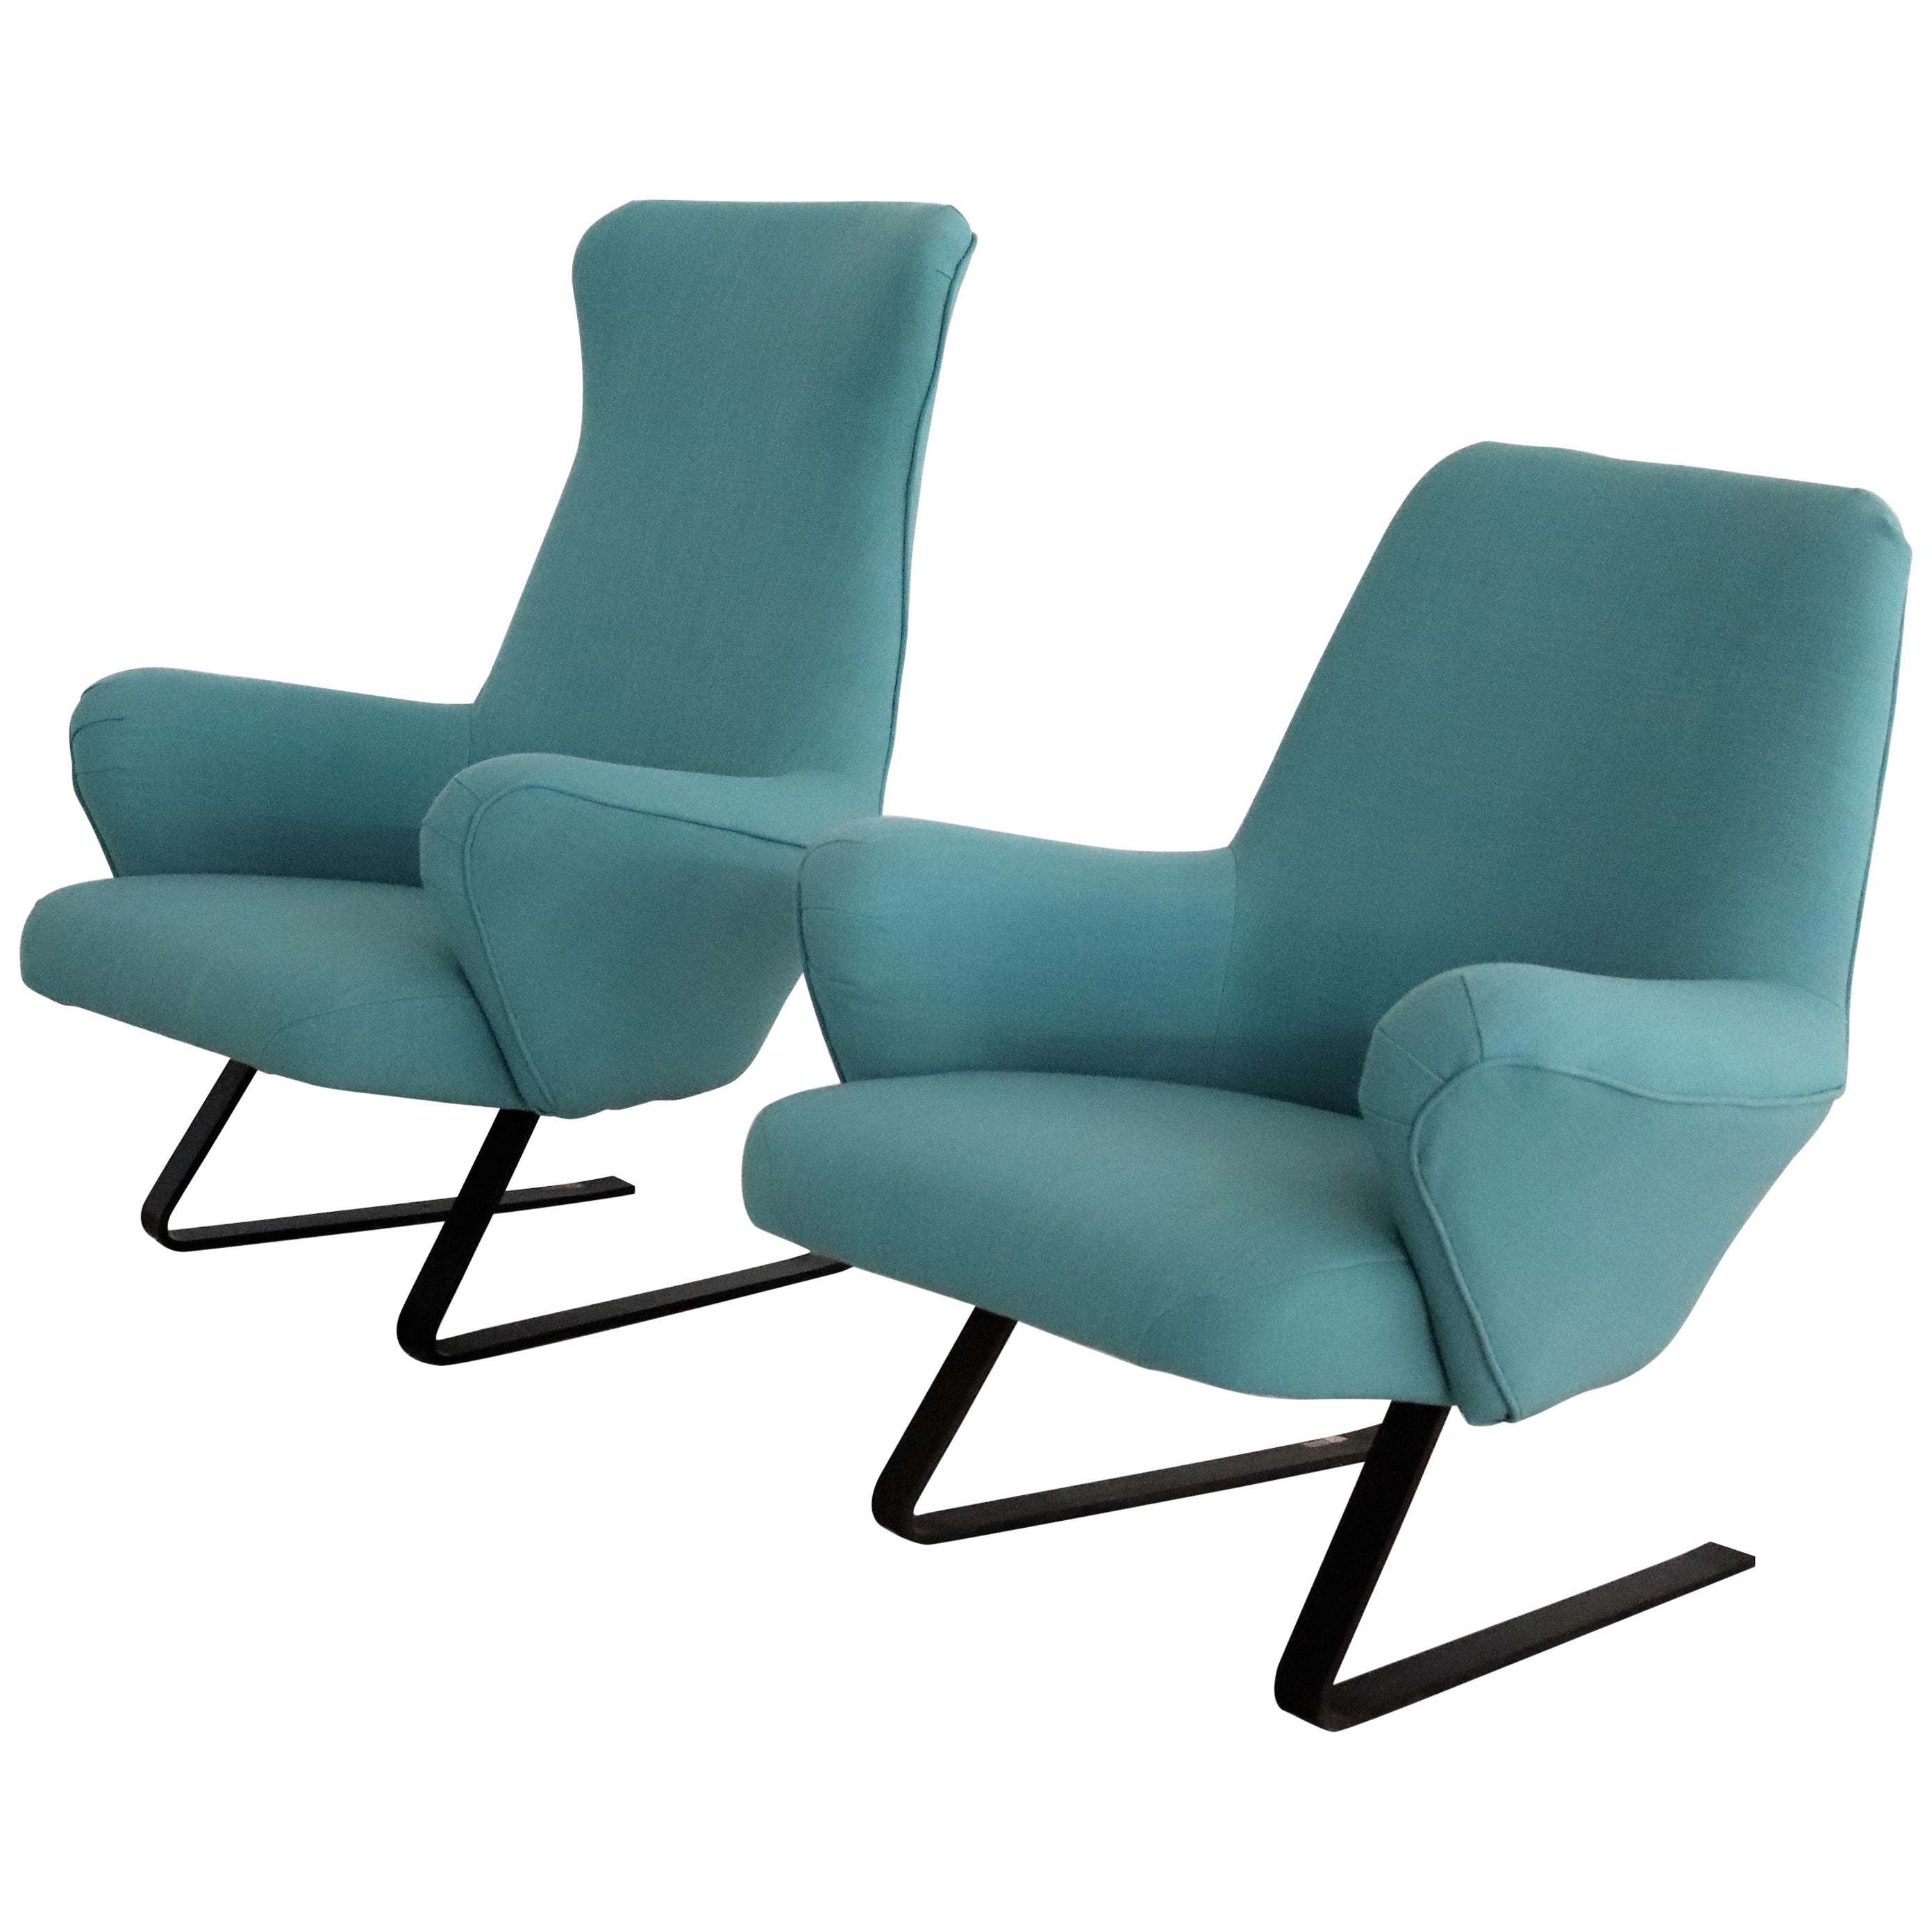 Italian Midcentury Rocking Armchairs by Gianni Moscatelli for Formanova, 1960s